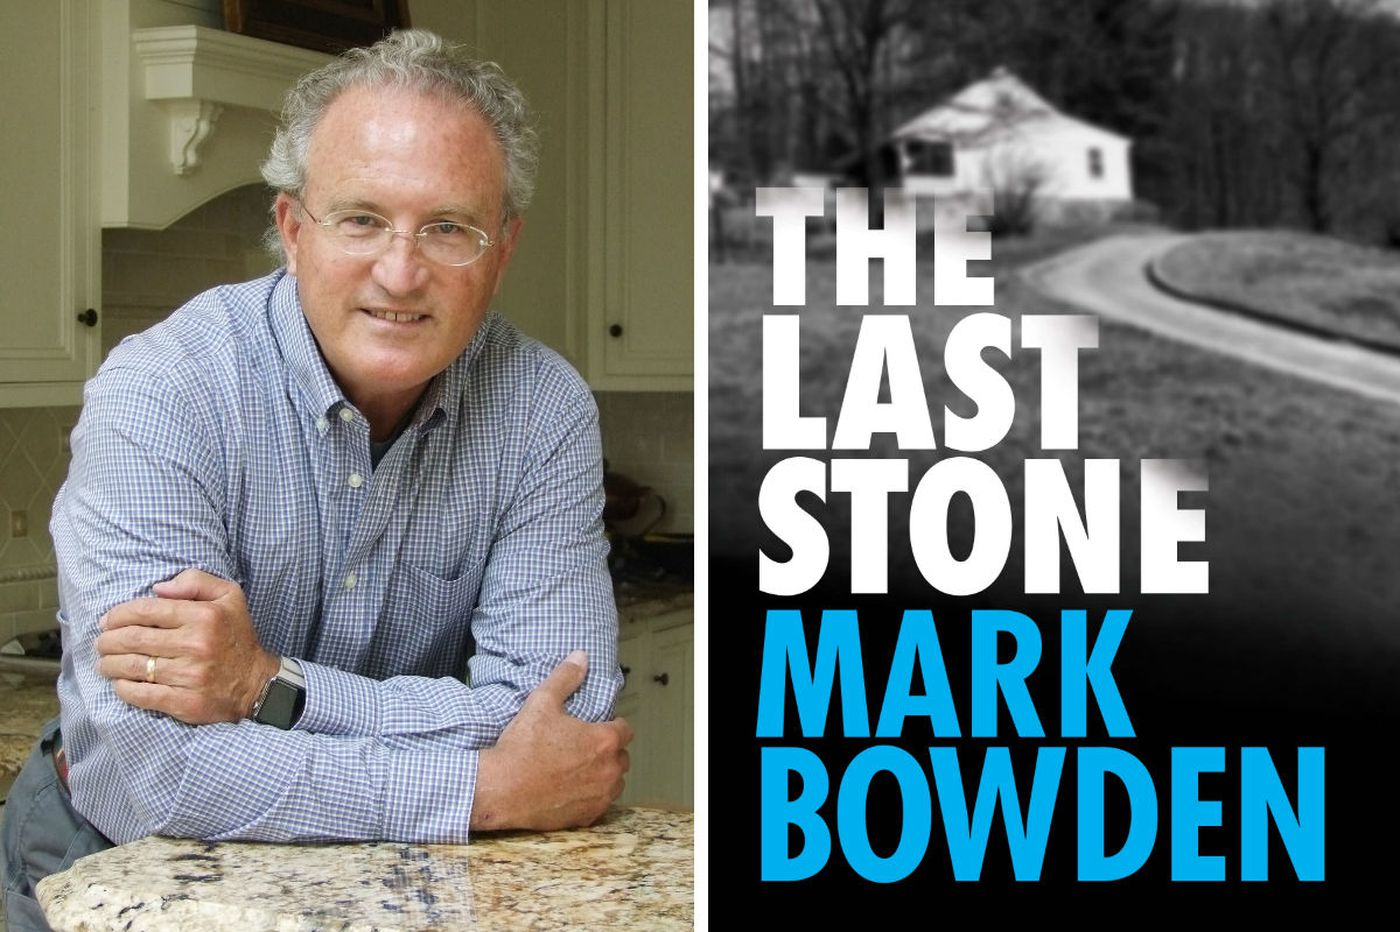 Mark Bowden's 'The Last Stone': Bizarre unraveling of 'the coldest of cold cases'